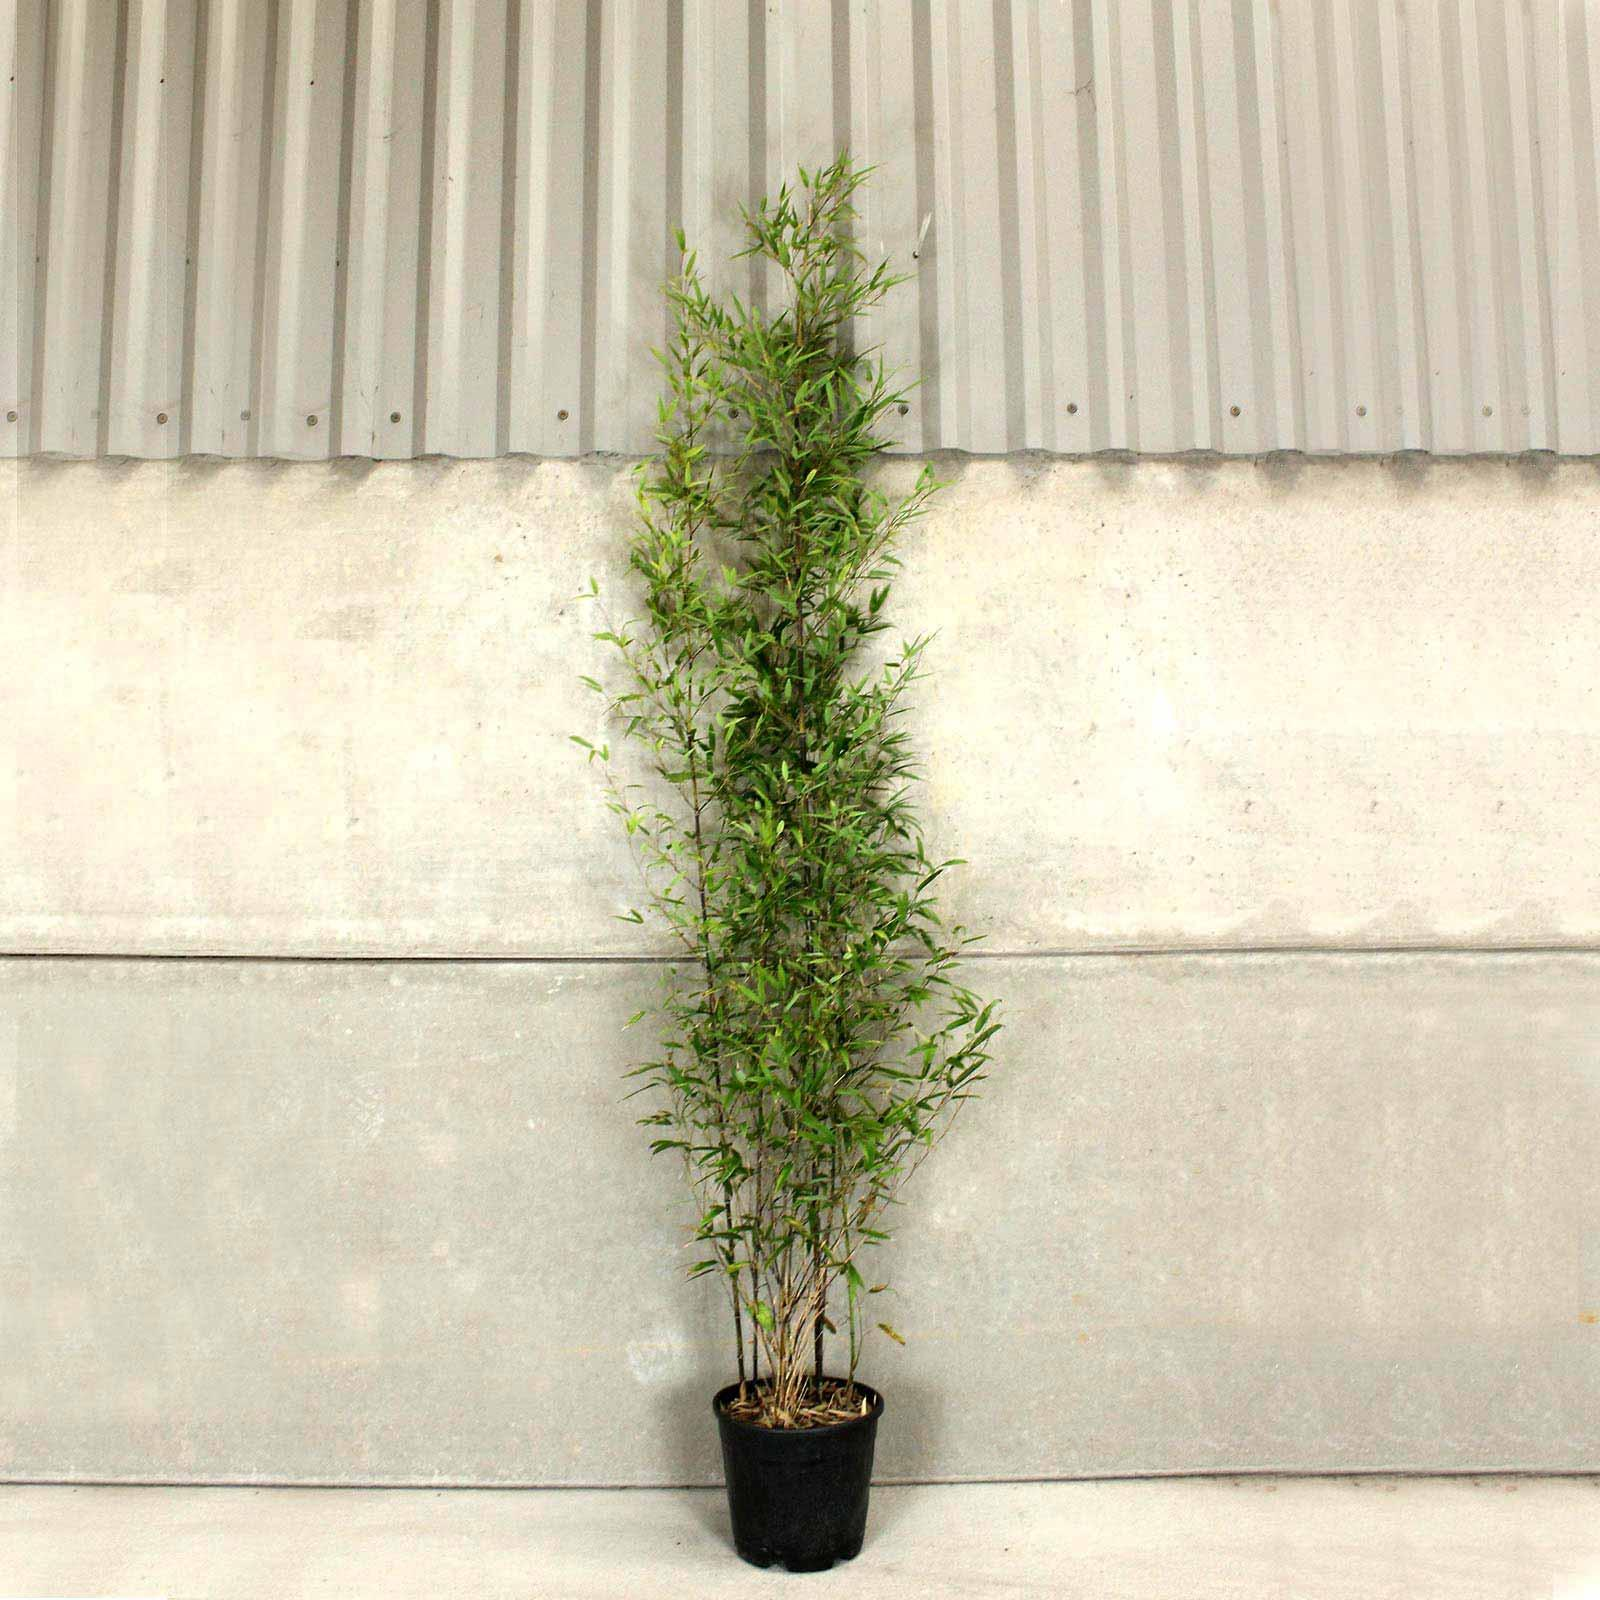 Phyllostachys Nigra In Pots Black Bamboo 100 120cm 10l Pot Reviews Hedges Direct Ltd Reviews